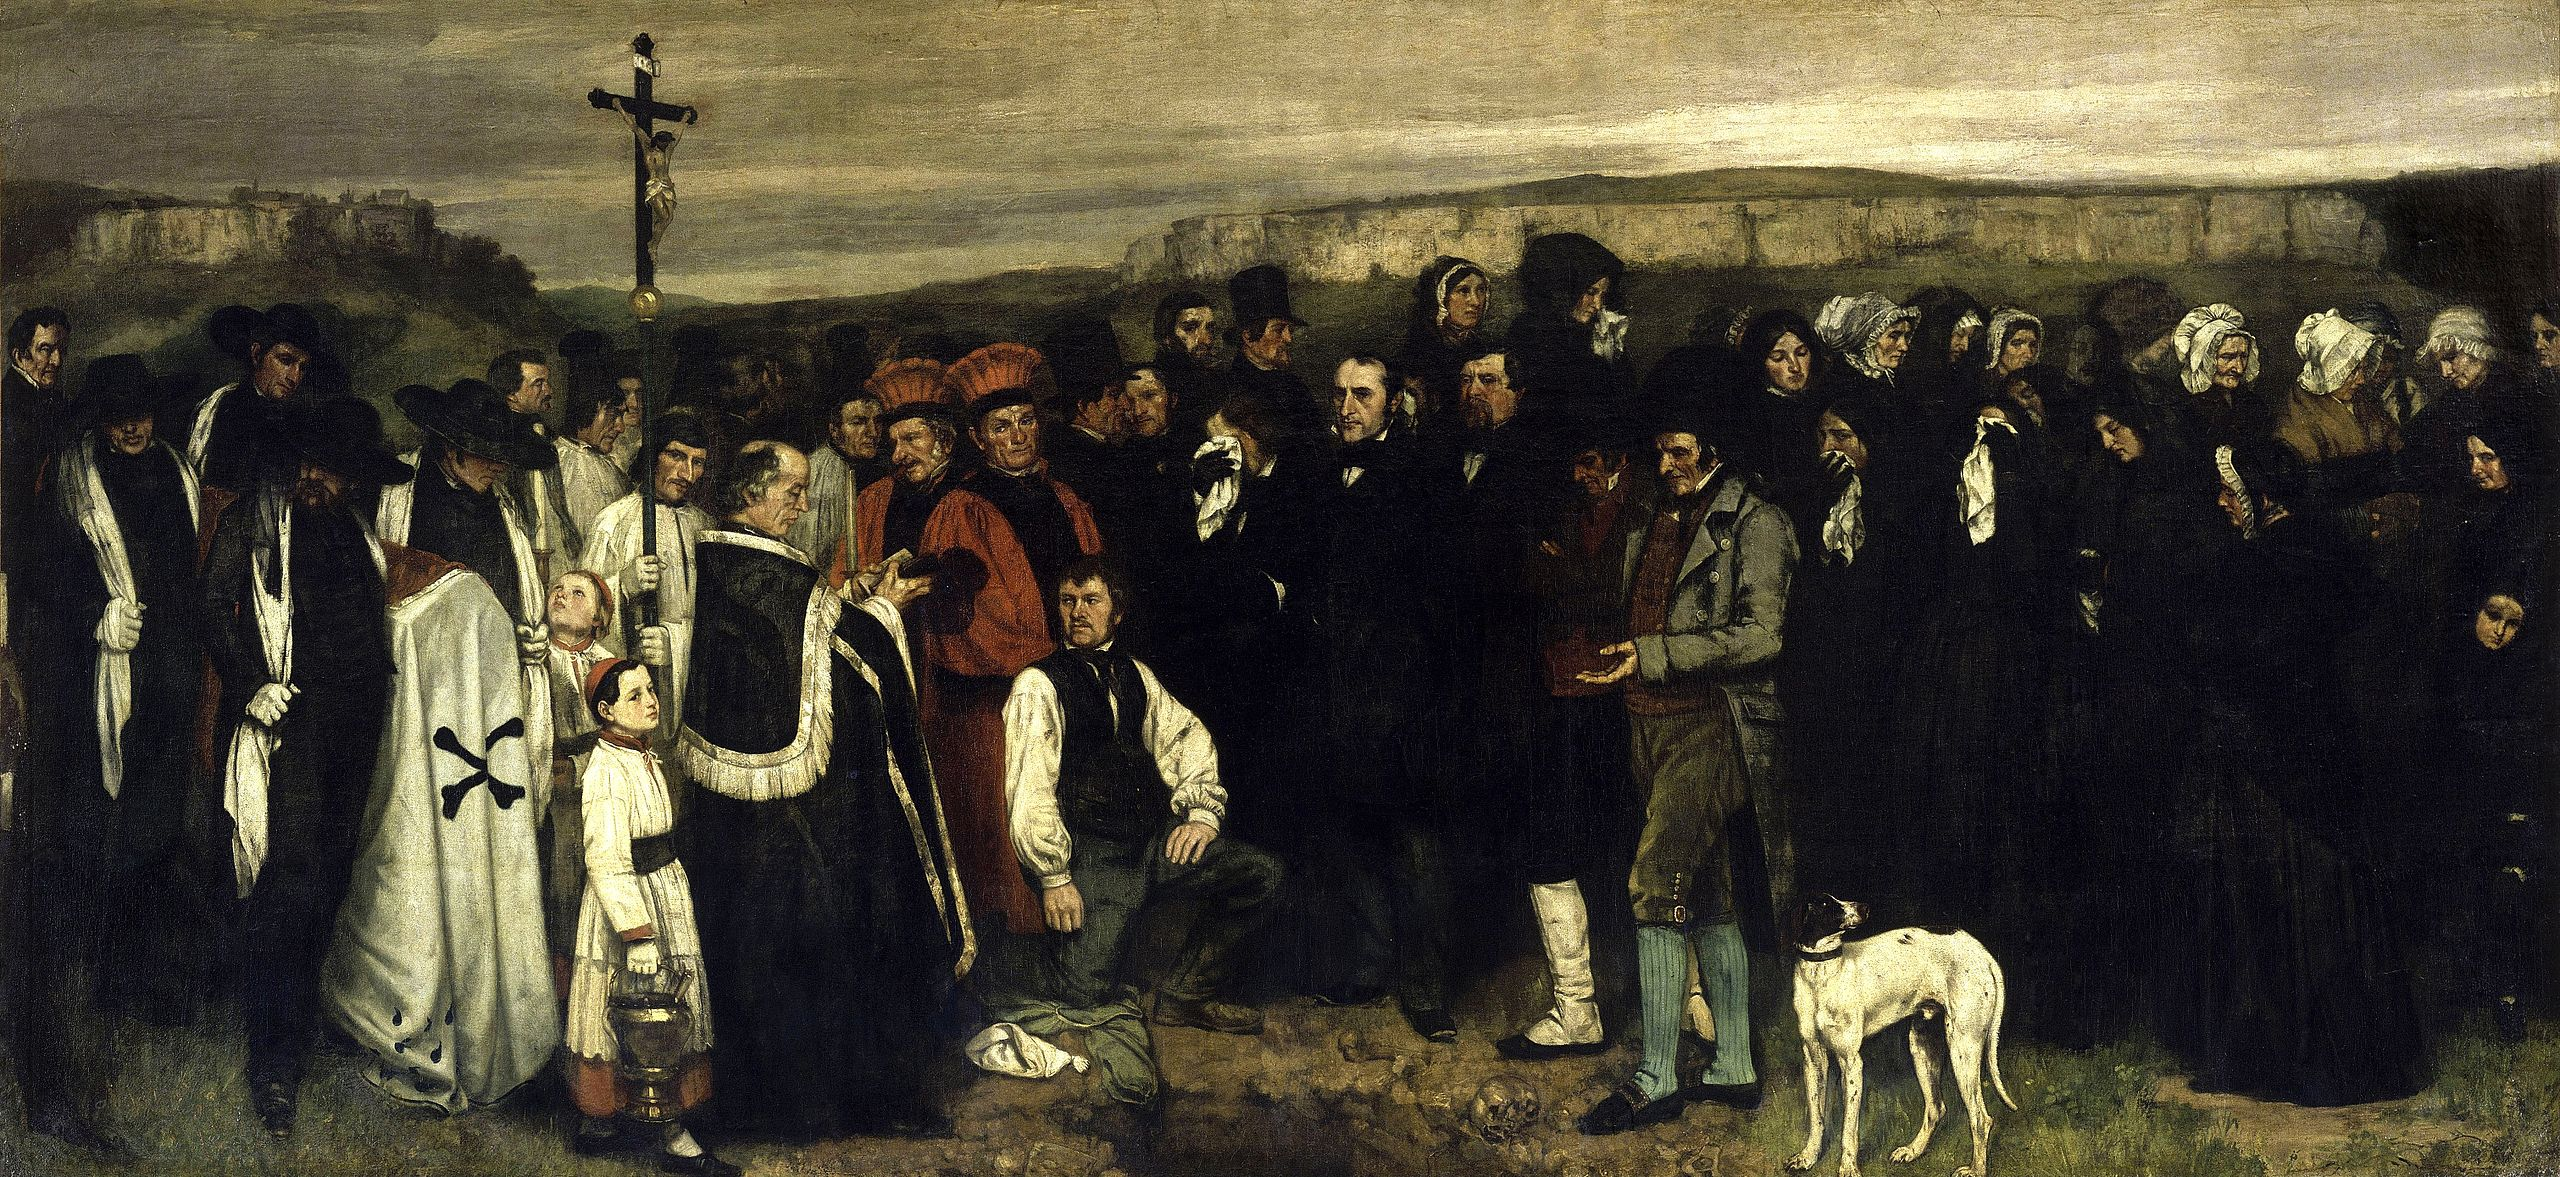 Courbet, Burial at Ornans, 1849-50